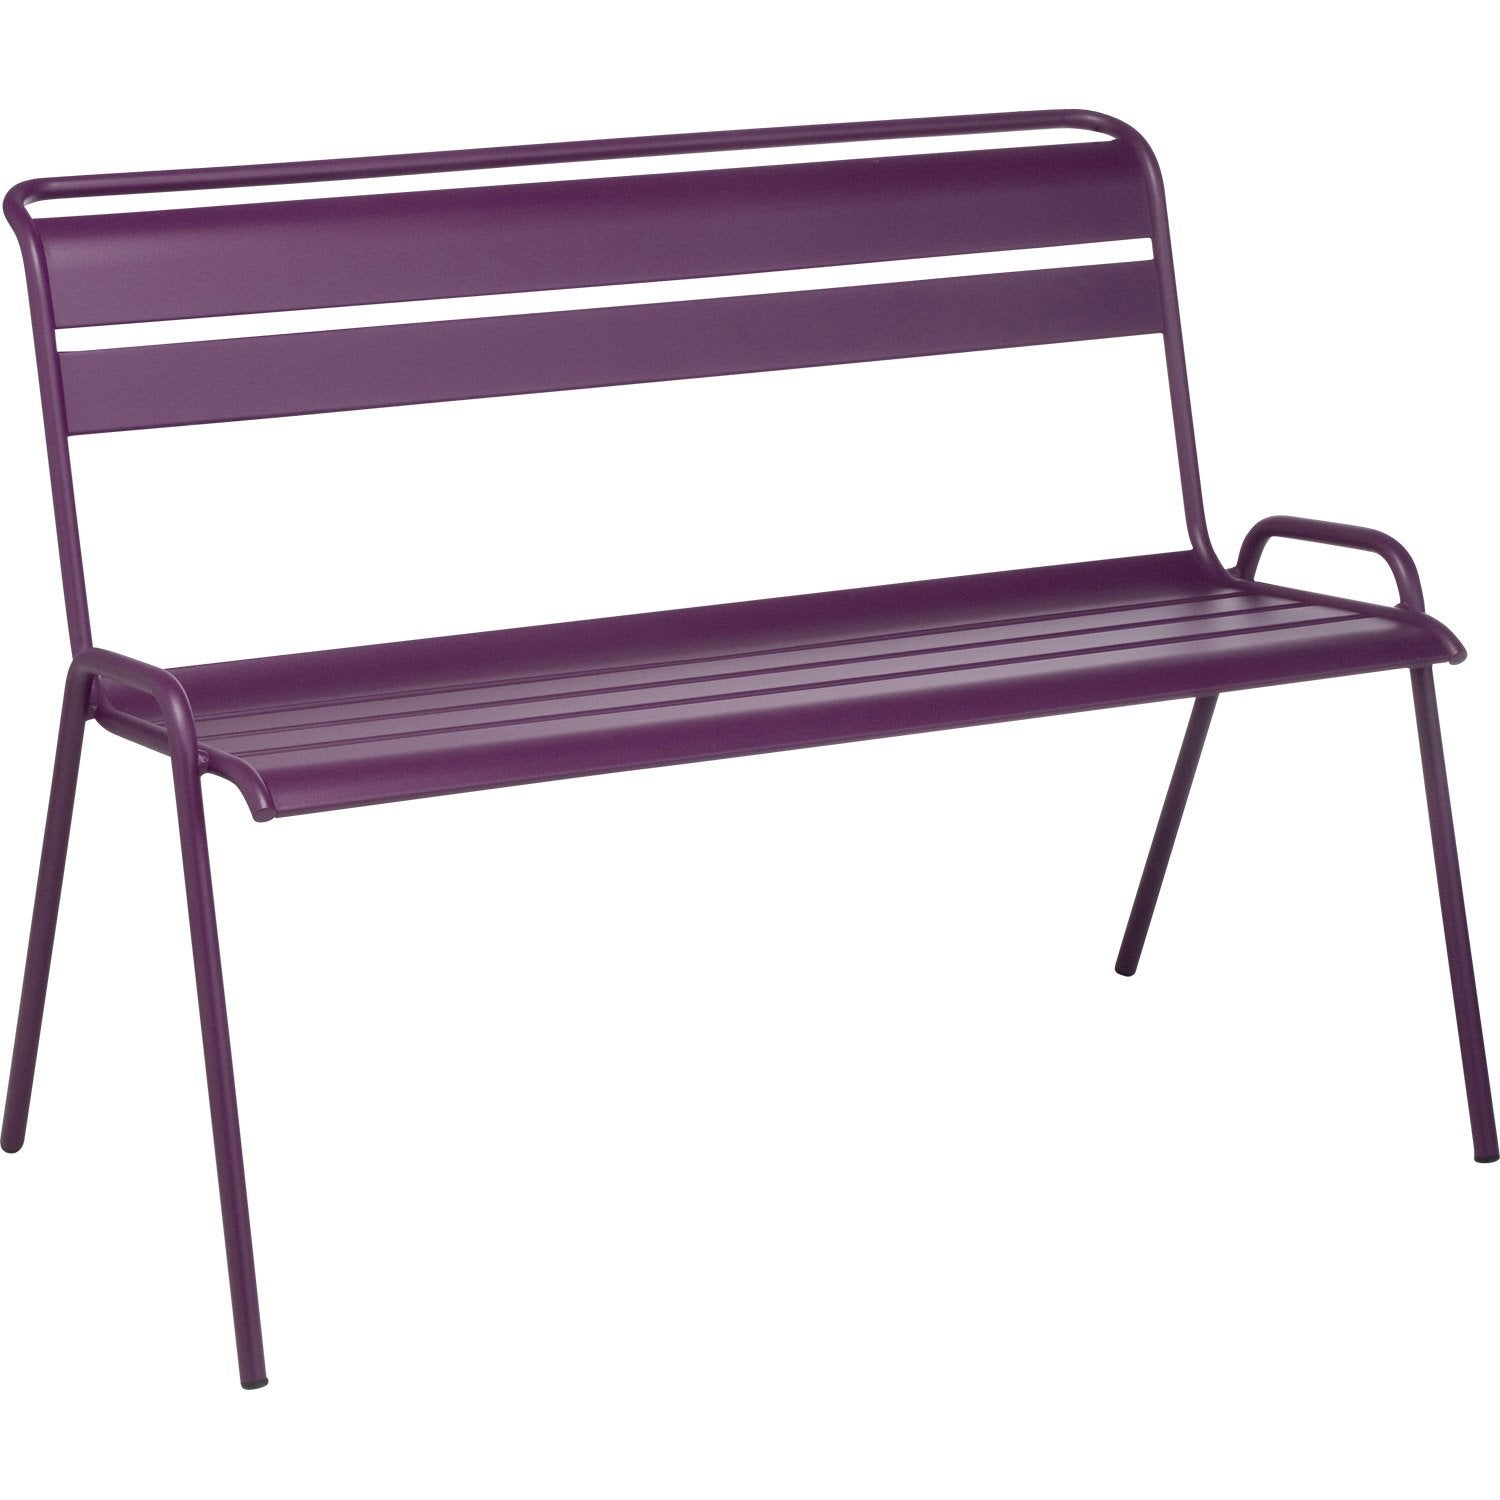 banc 2 places de jardin en acier monceau aubergine leroy merlin. Black Bedroom Furniture Sets. Home Design Ideas